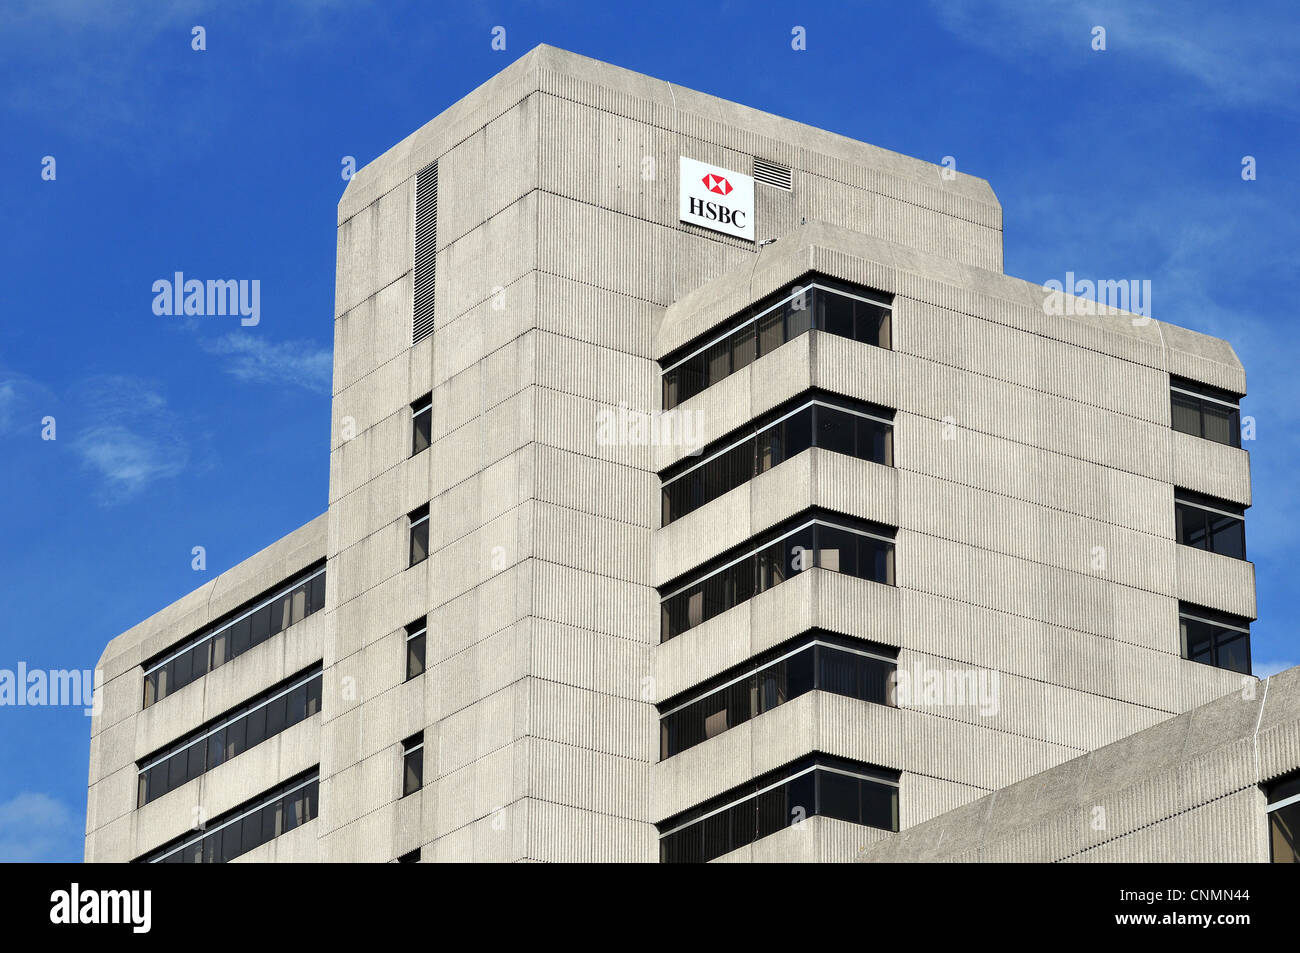 Concrete office block with the HSBC logo, in the Nelson Gate complex the centre of Southampton, Hampshire, UK Stock Photo